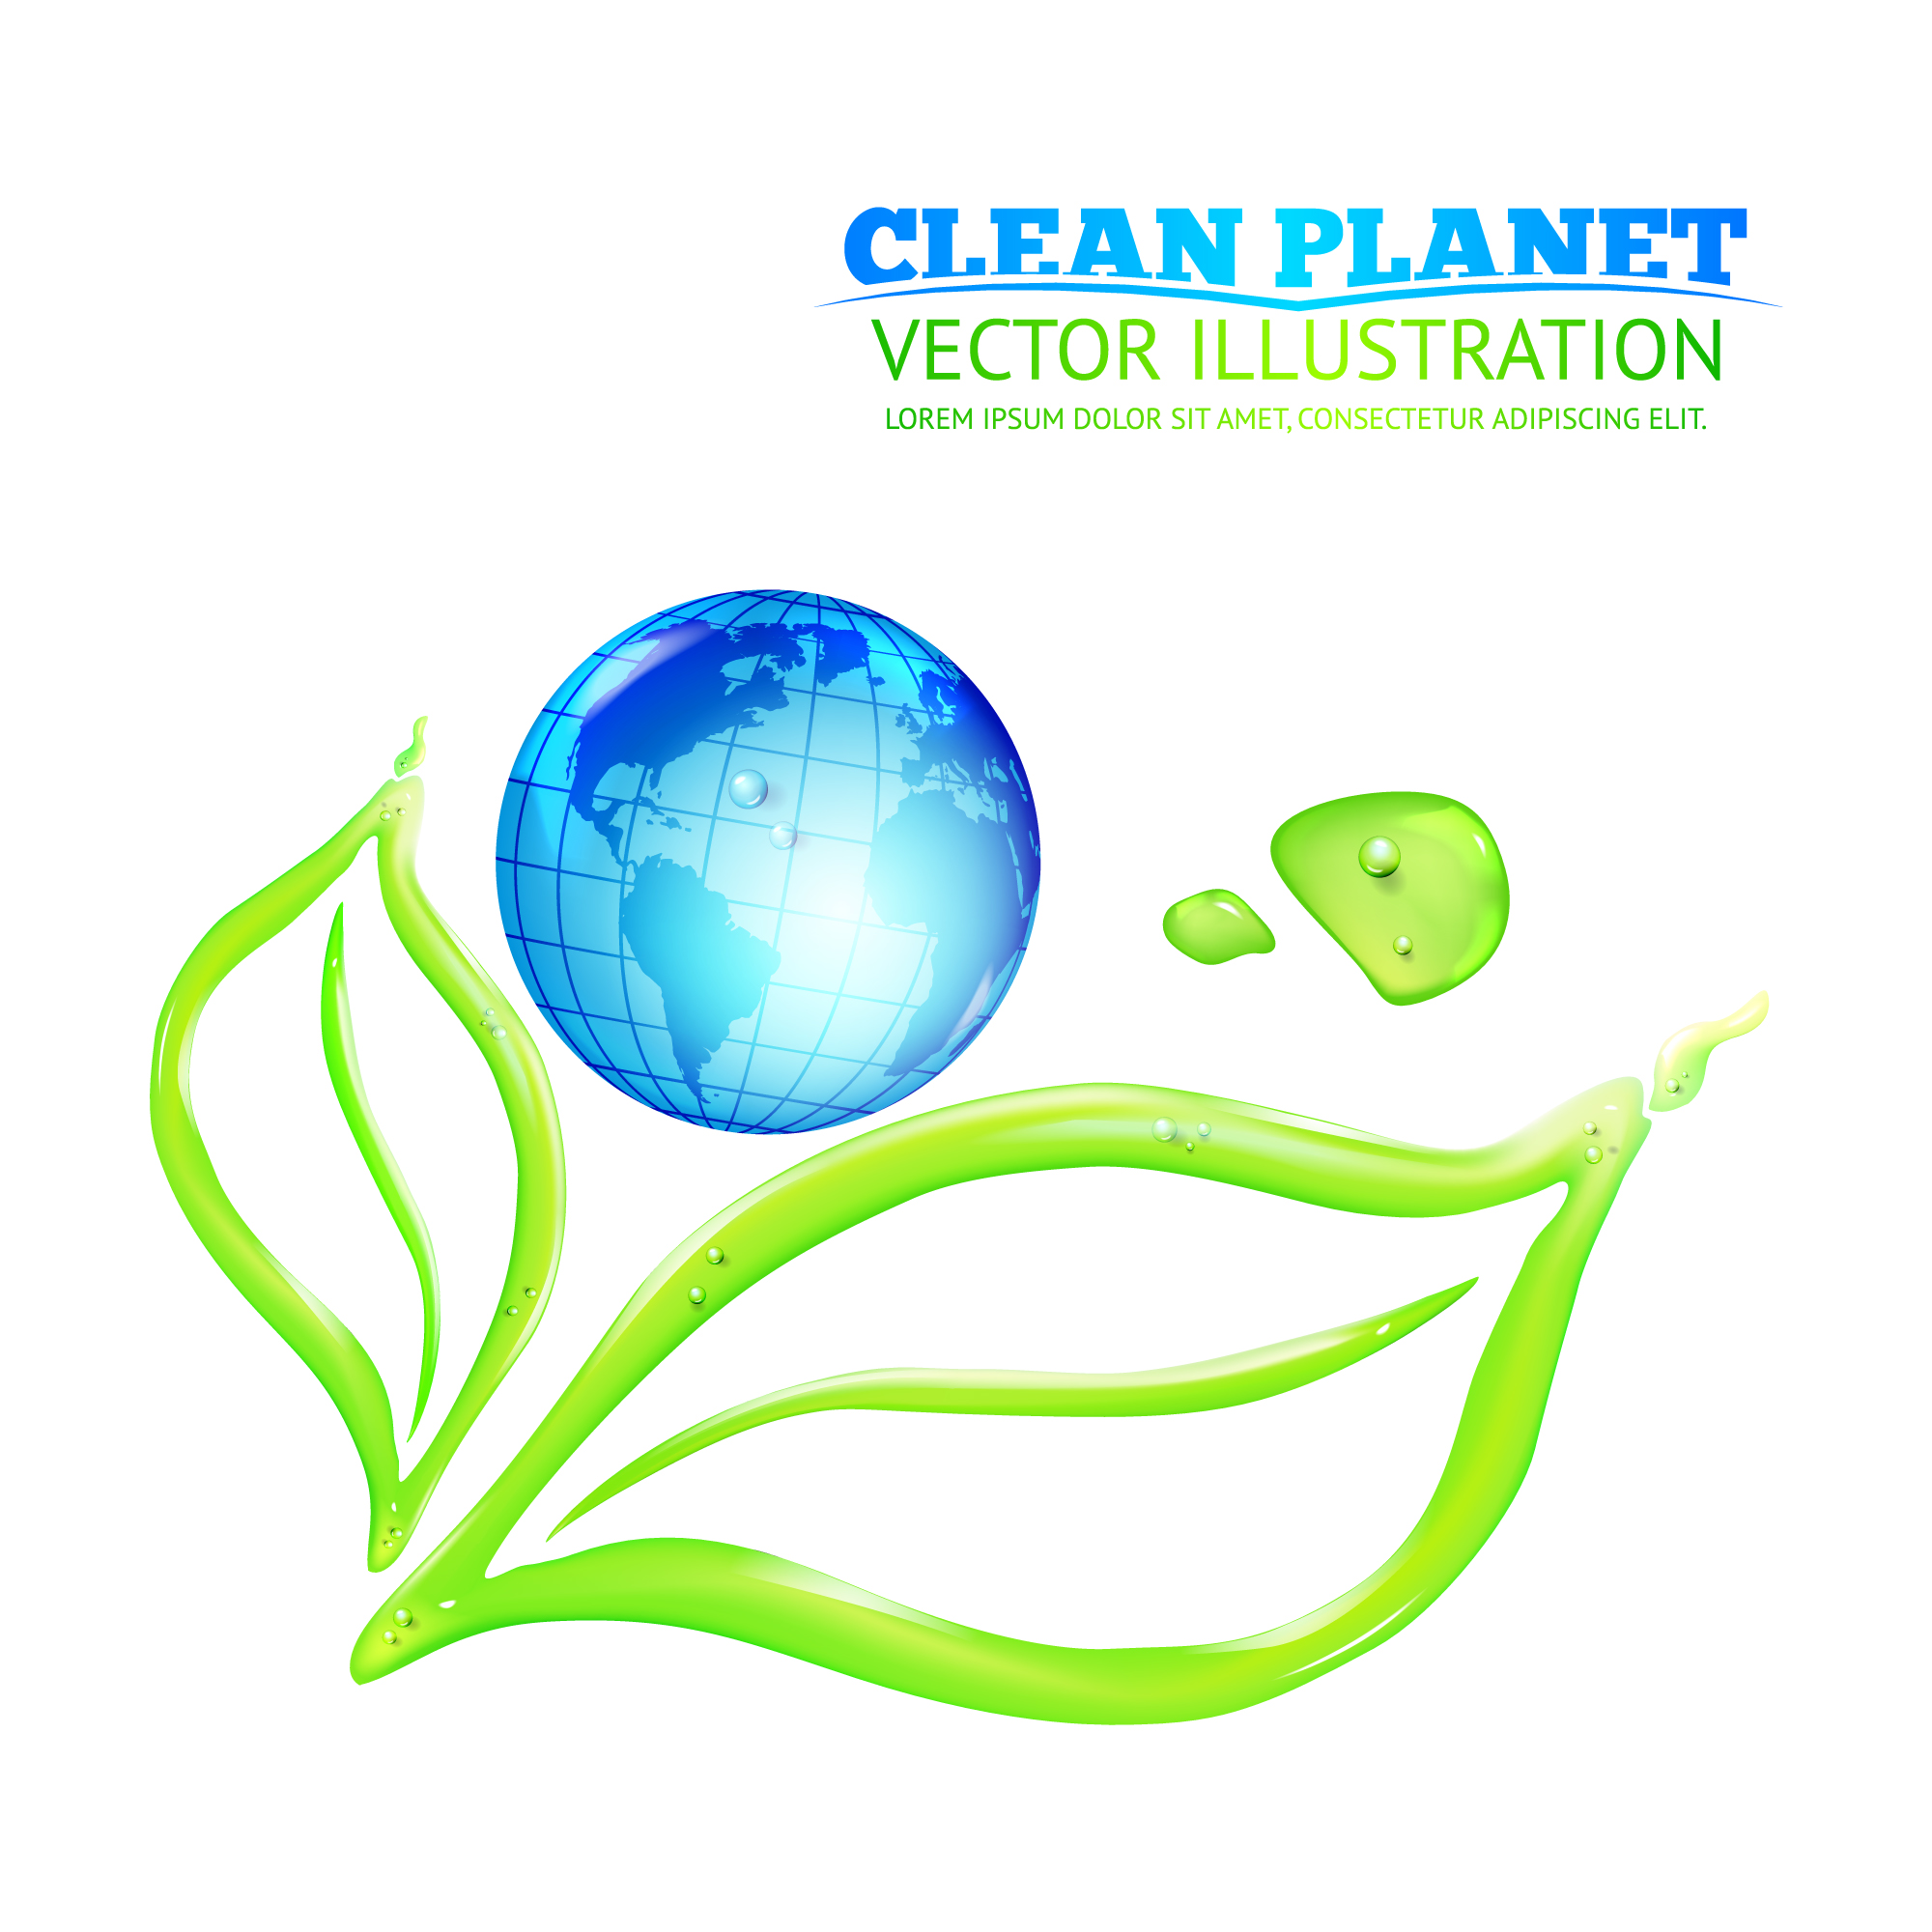 Clean planet illustration